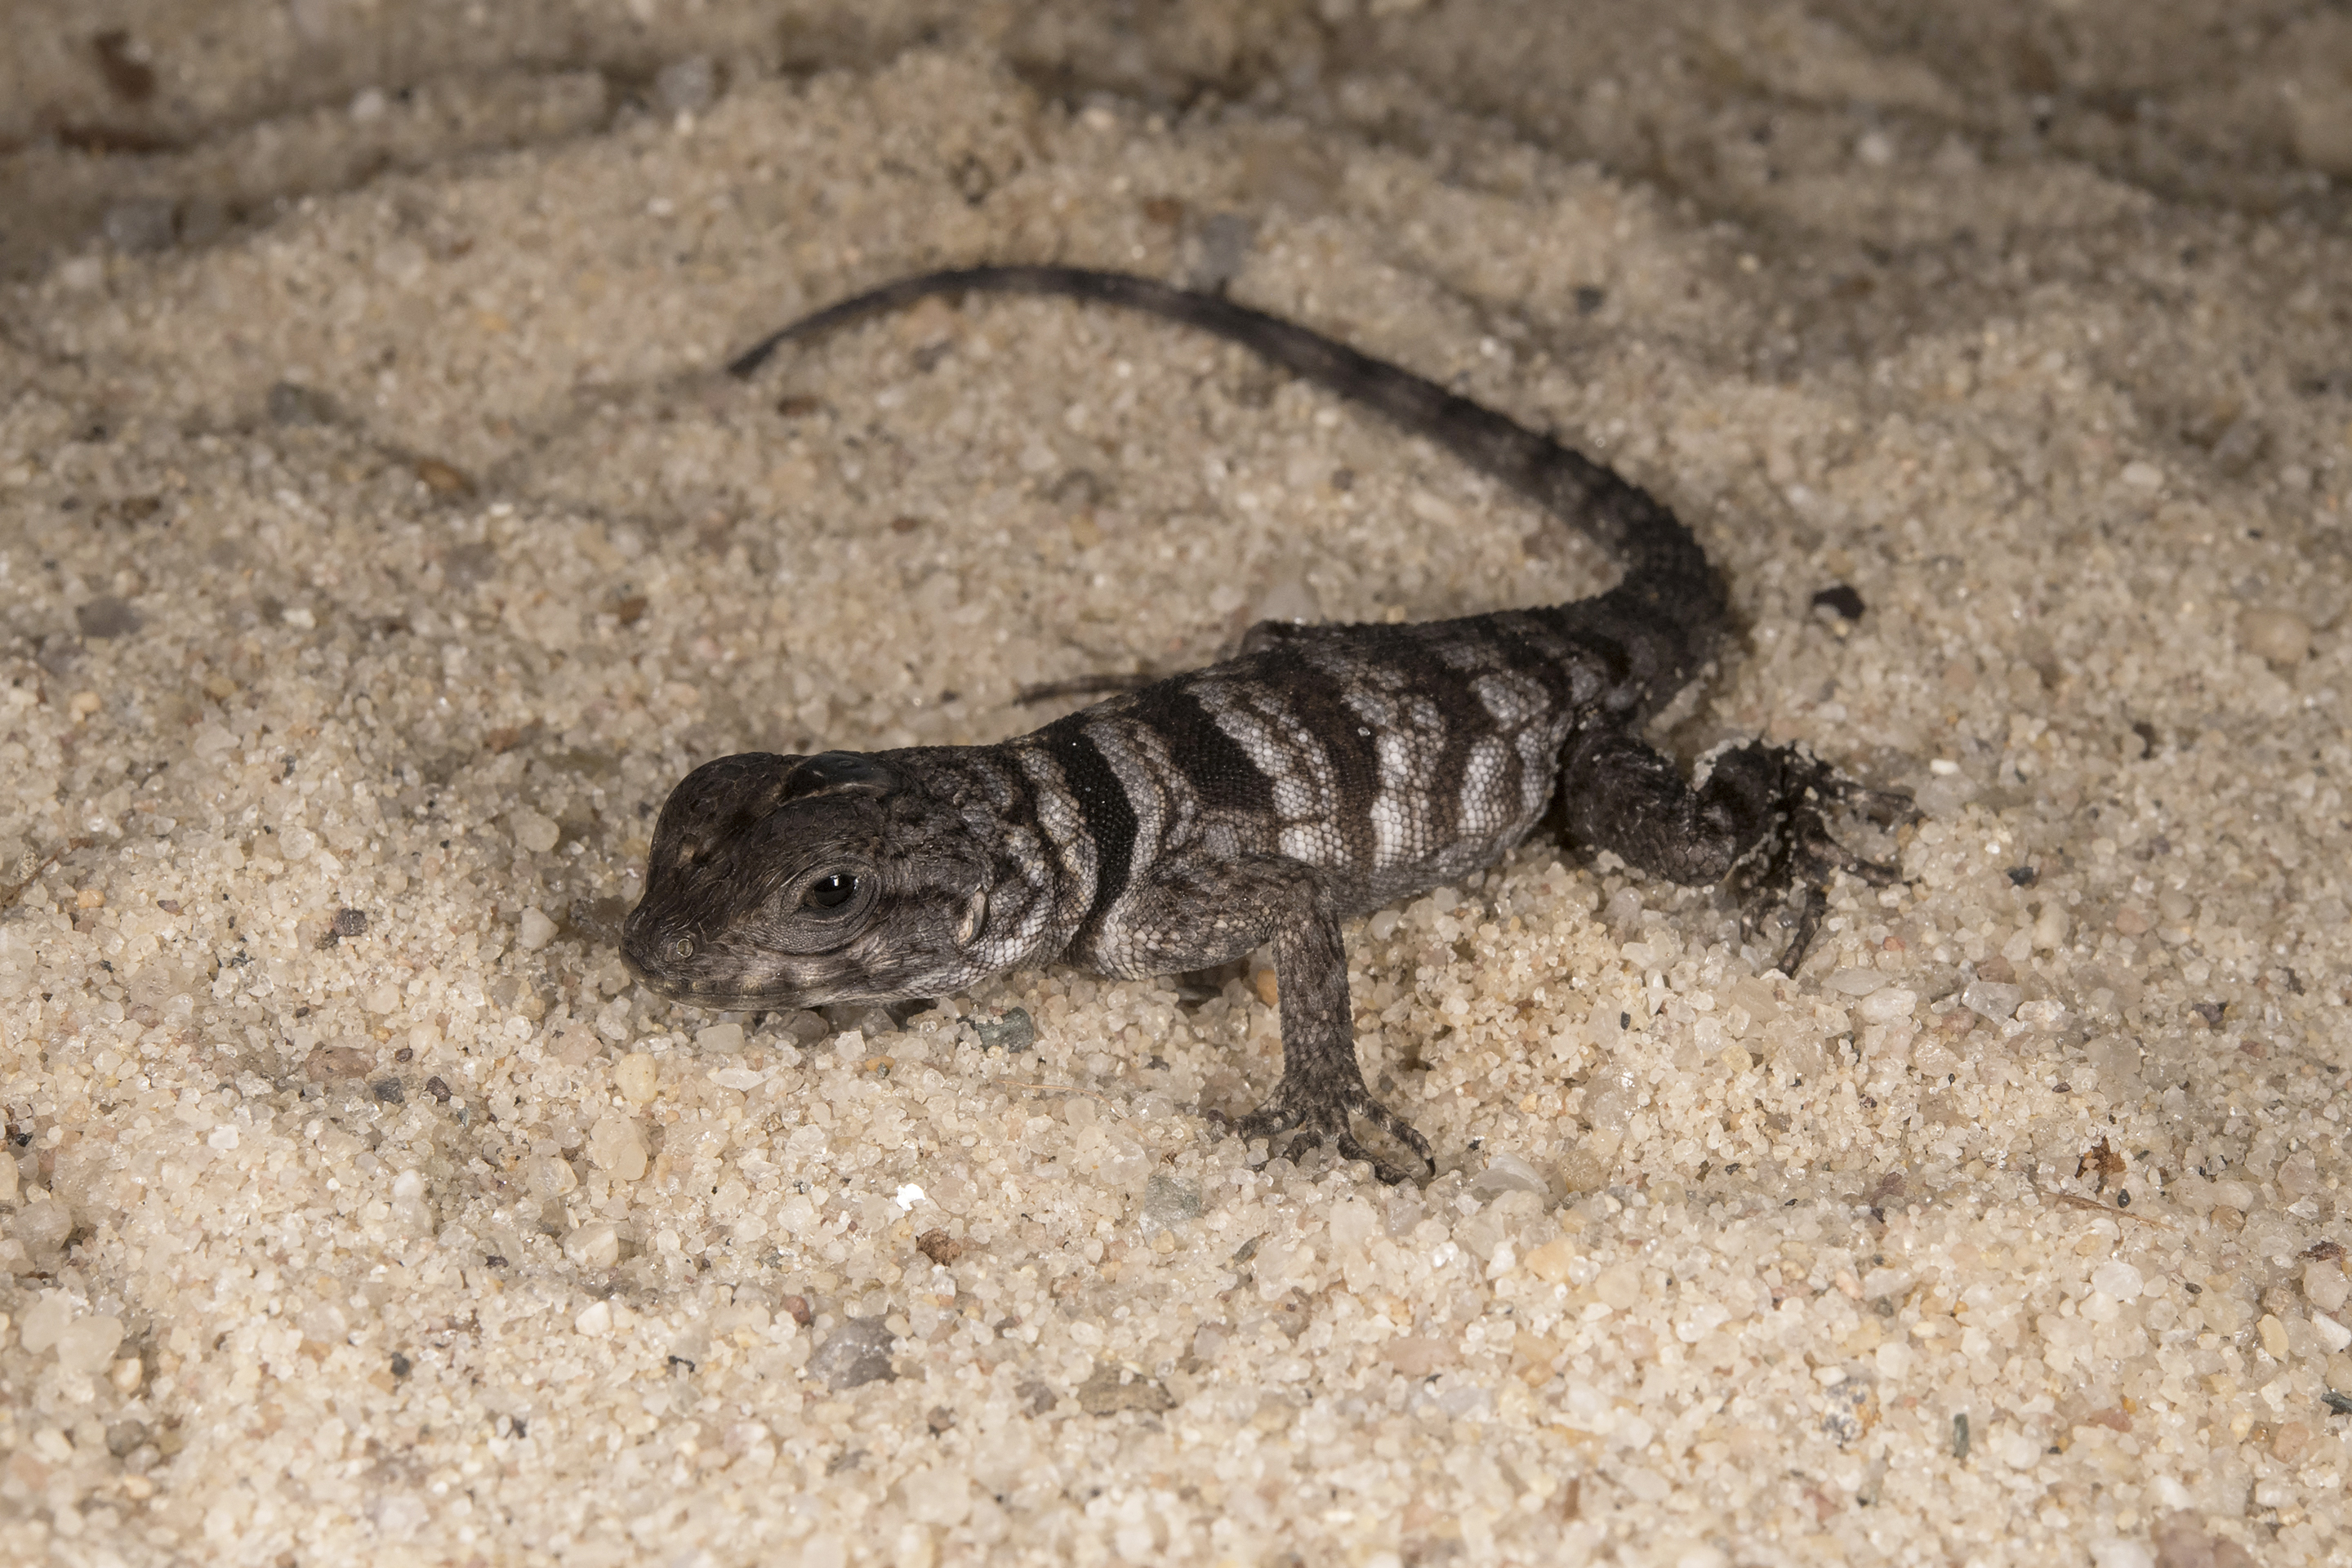 A Lizard from a Land Like No Other